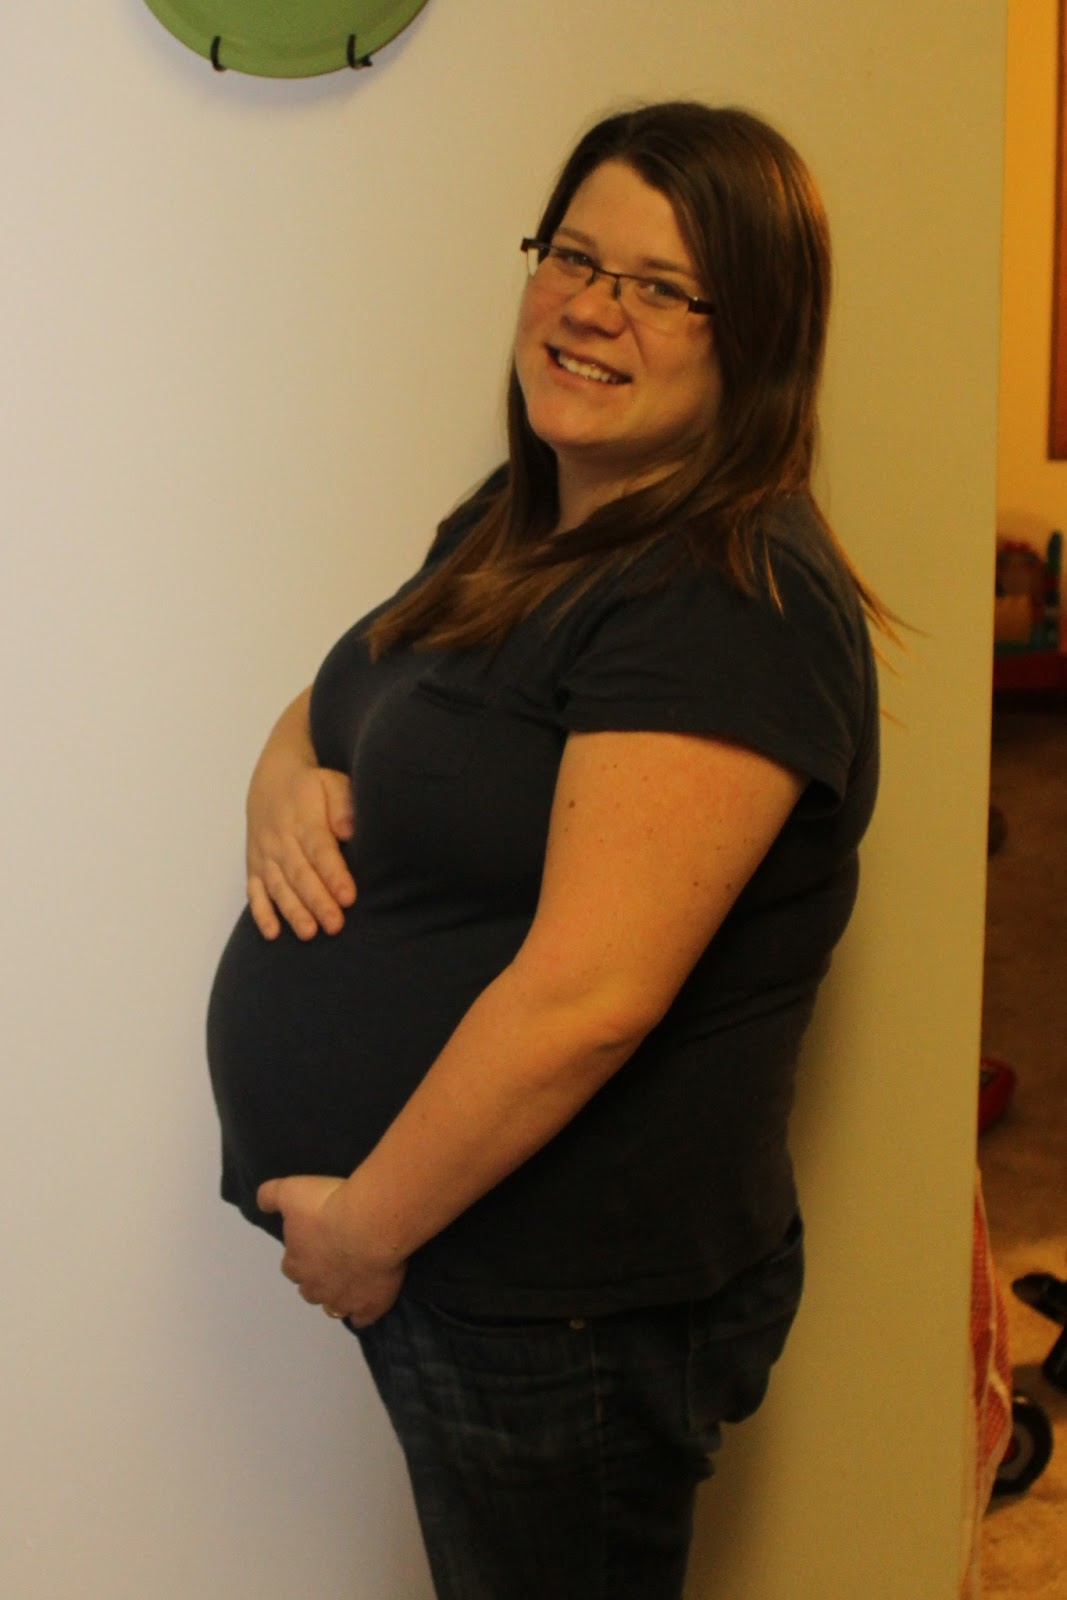 Months Pregnant Bump With the pregnancy and mp